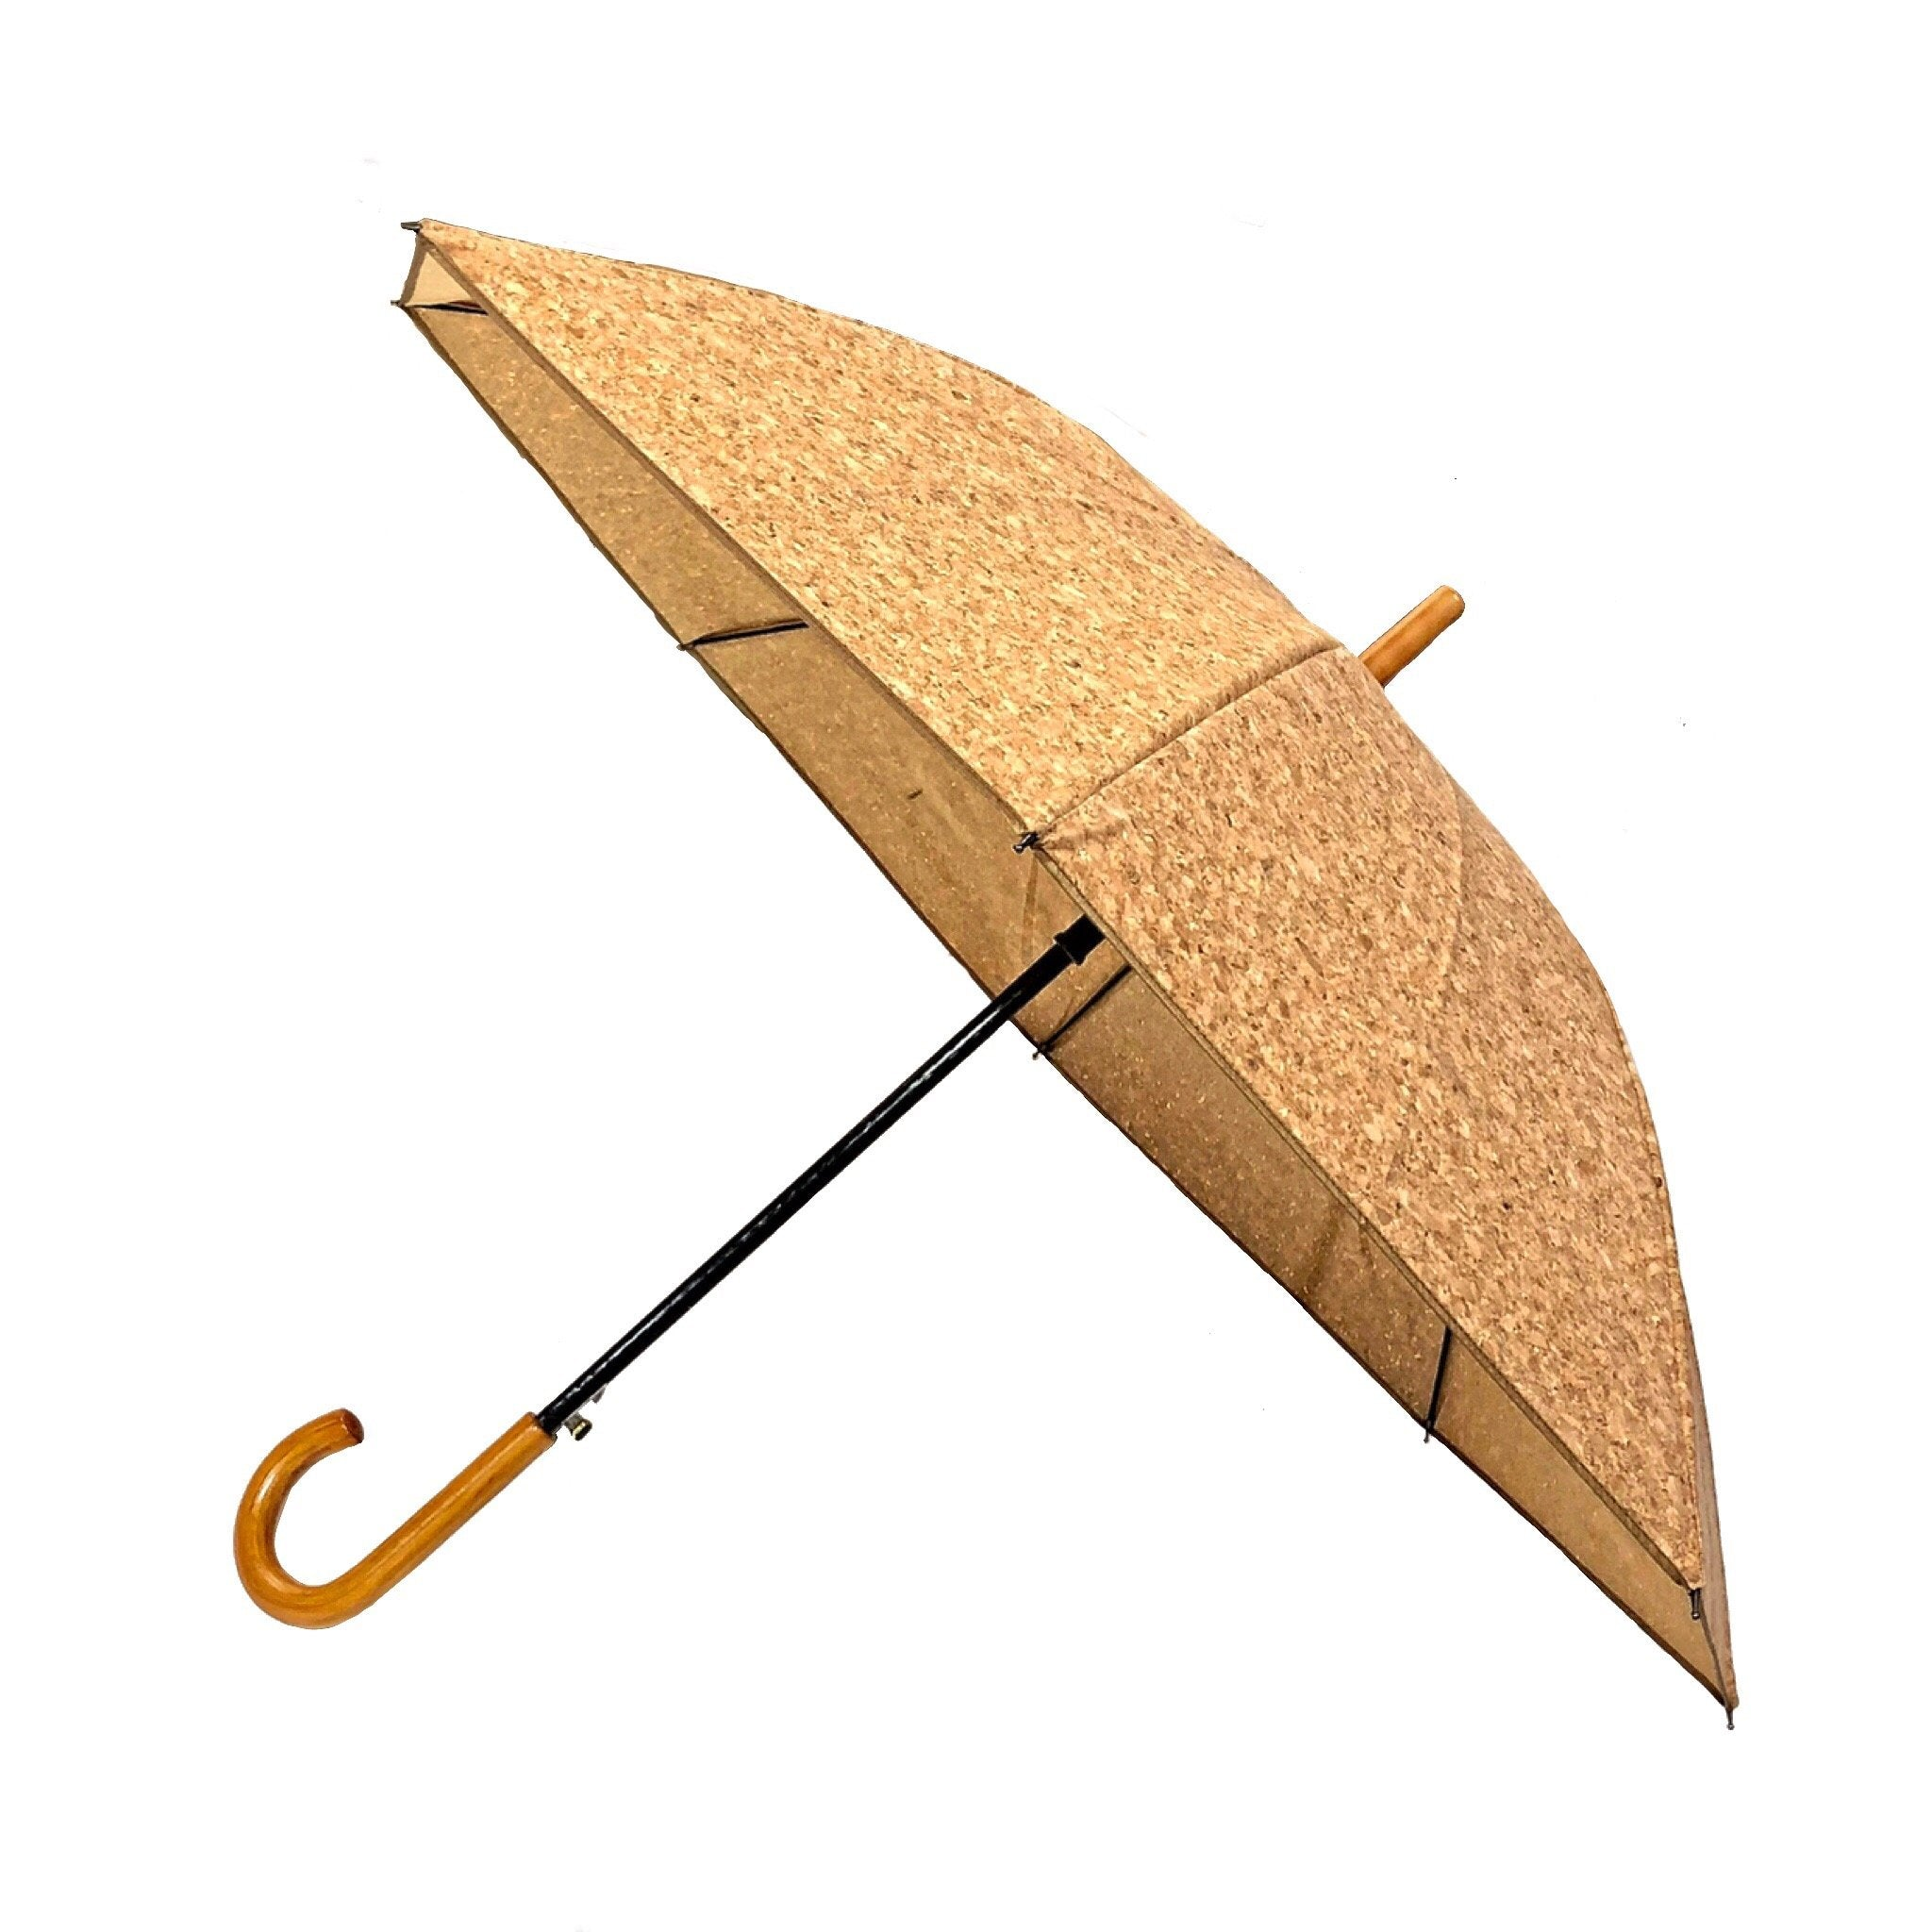 queork cork umbrella vegan